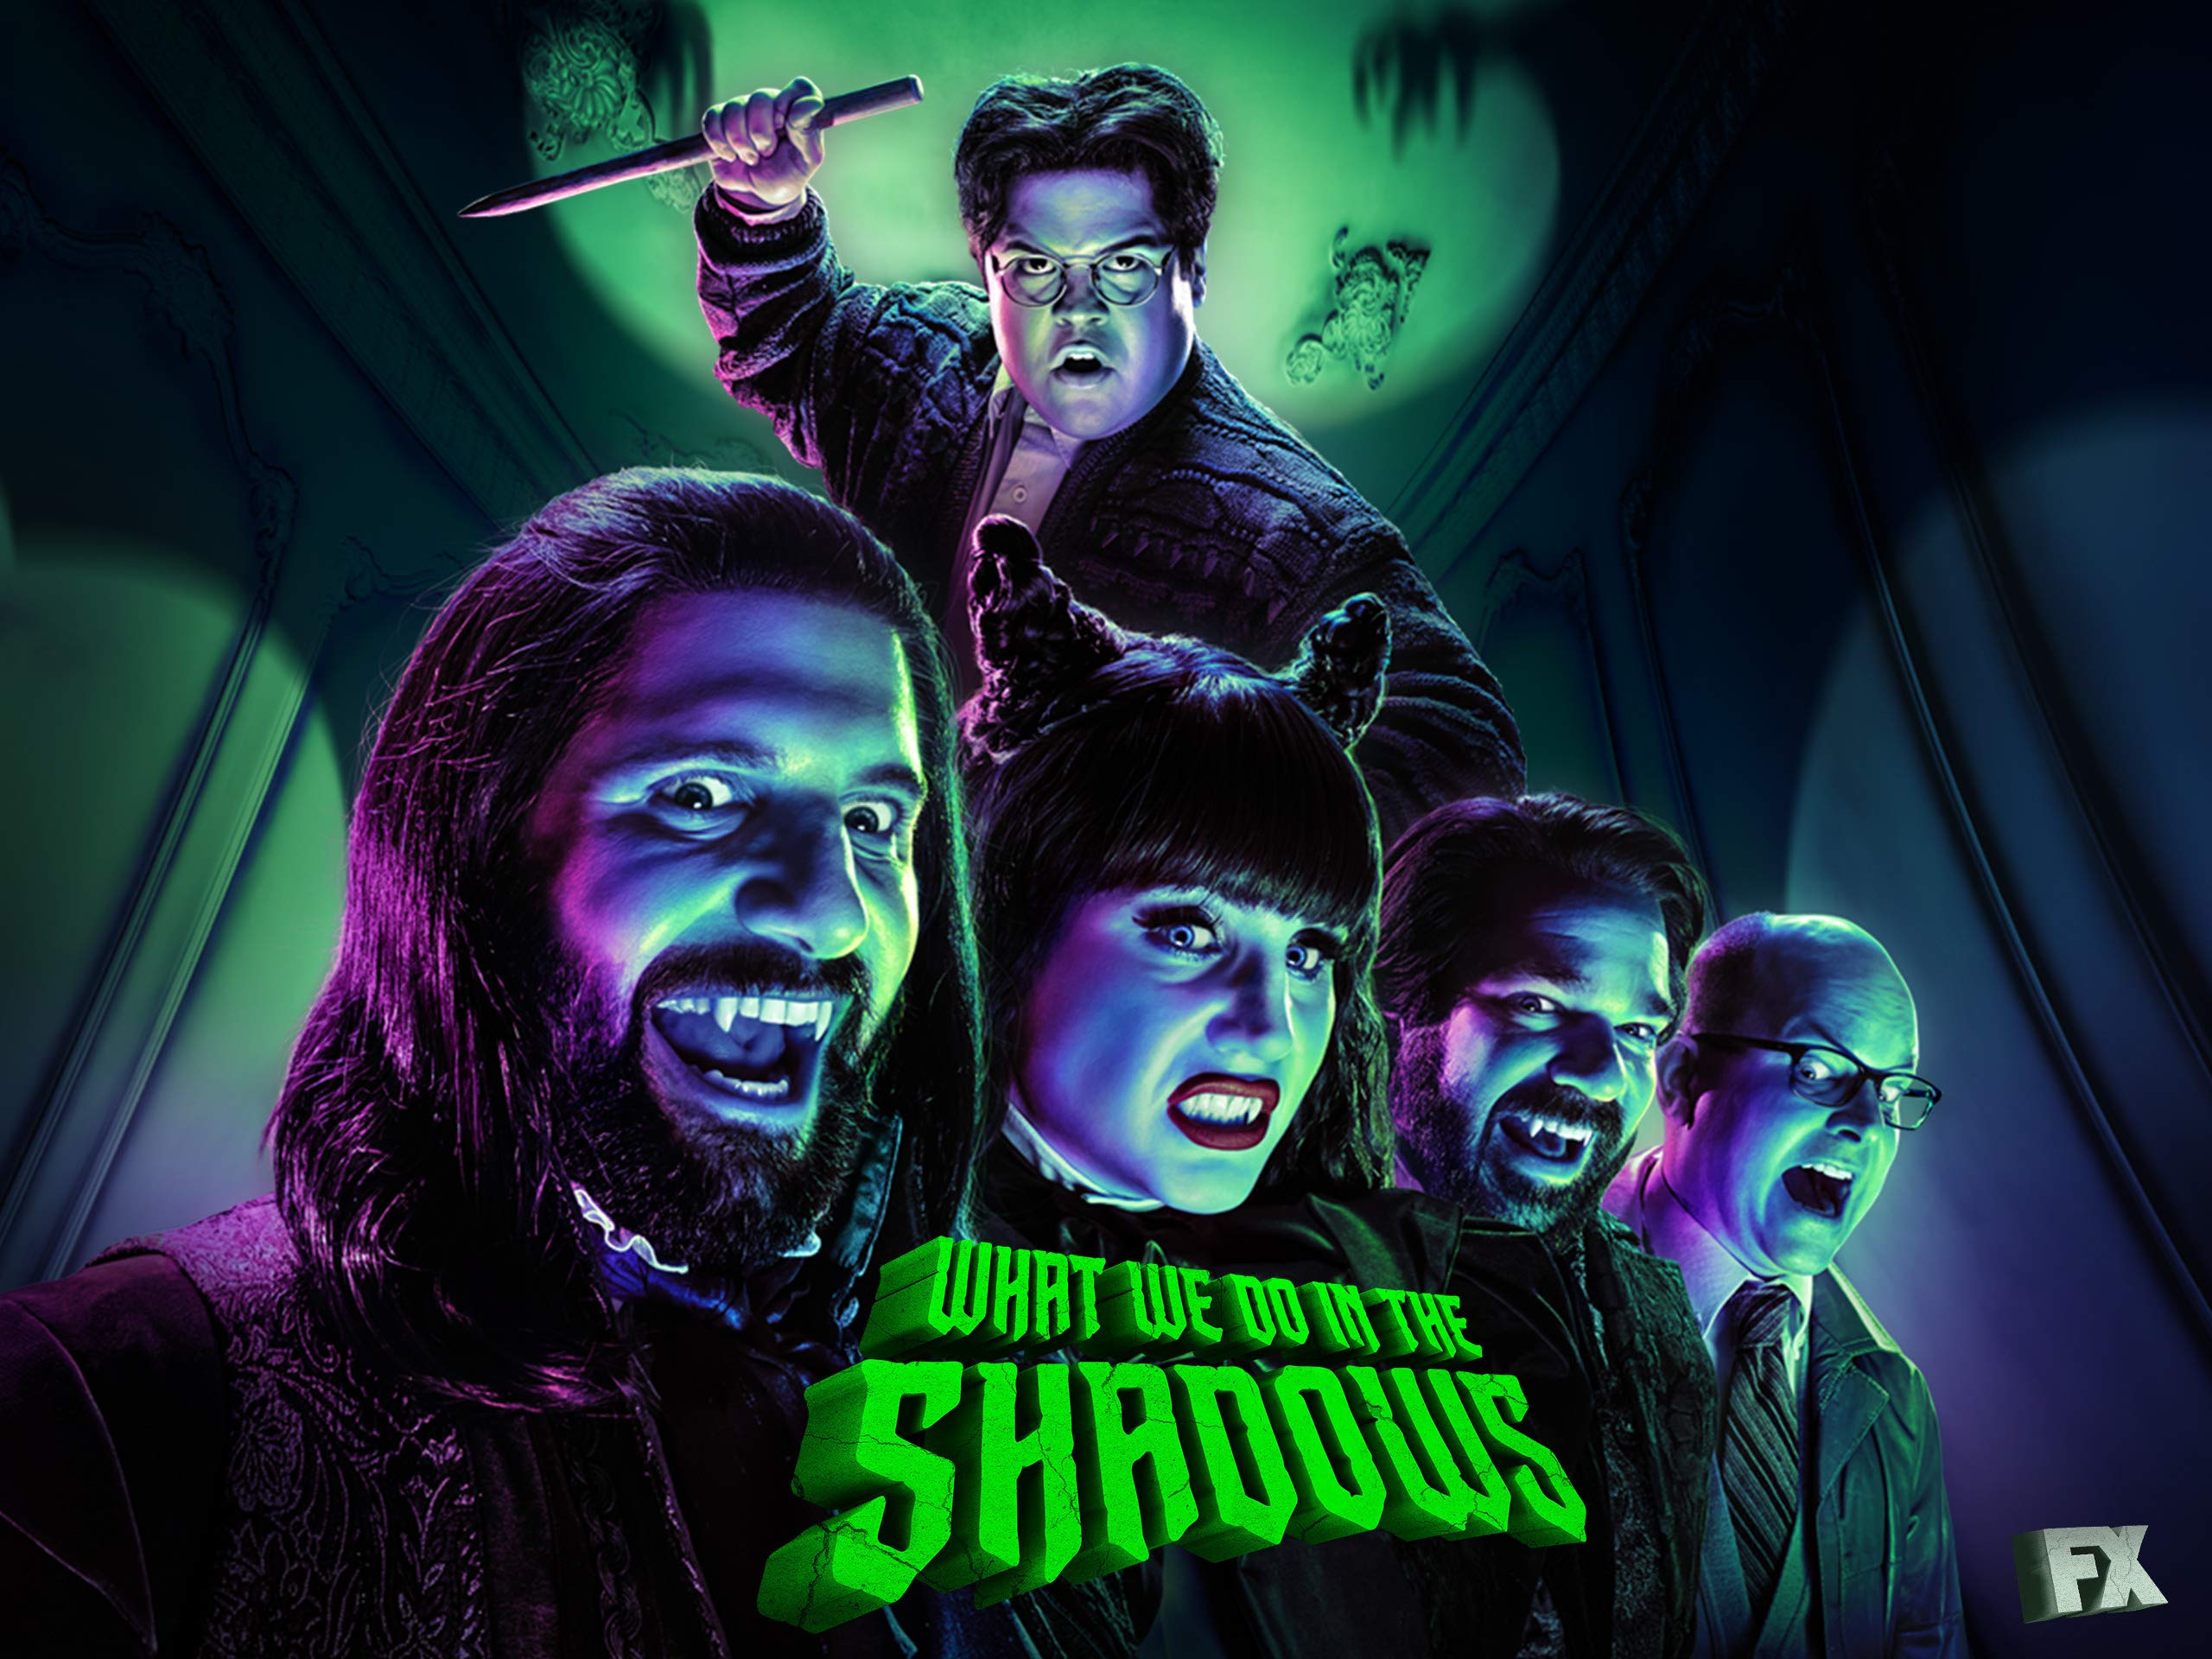 Amazon.com: Watch What We Do in the Shadows Season 2 | Prime Video